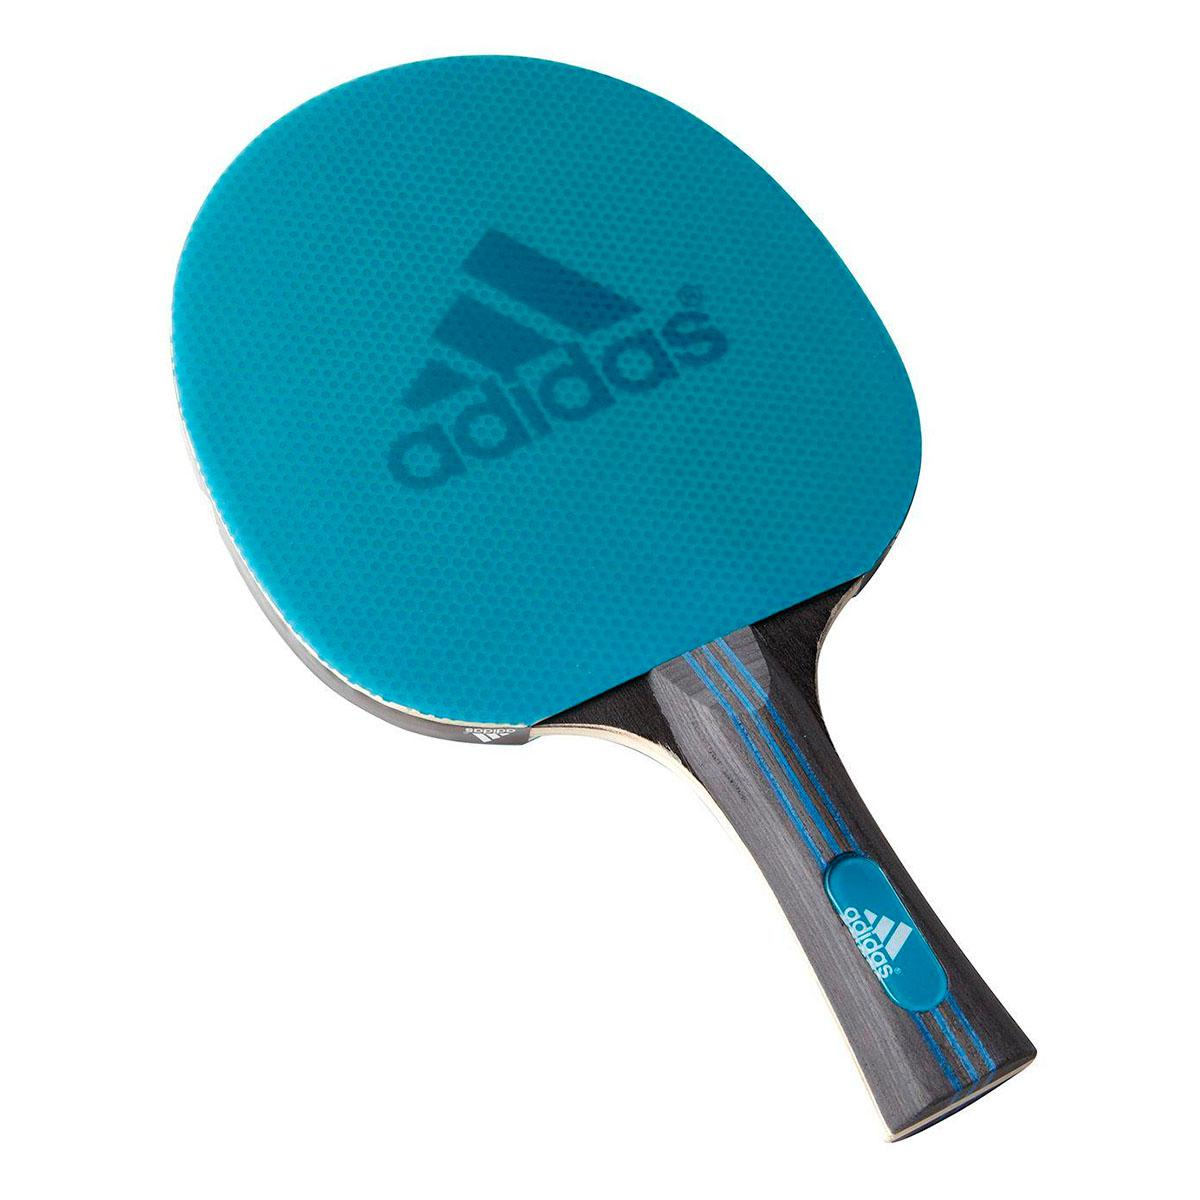 Adidas laser 2 0 table tennis bat various colours for Table tennis 99